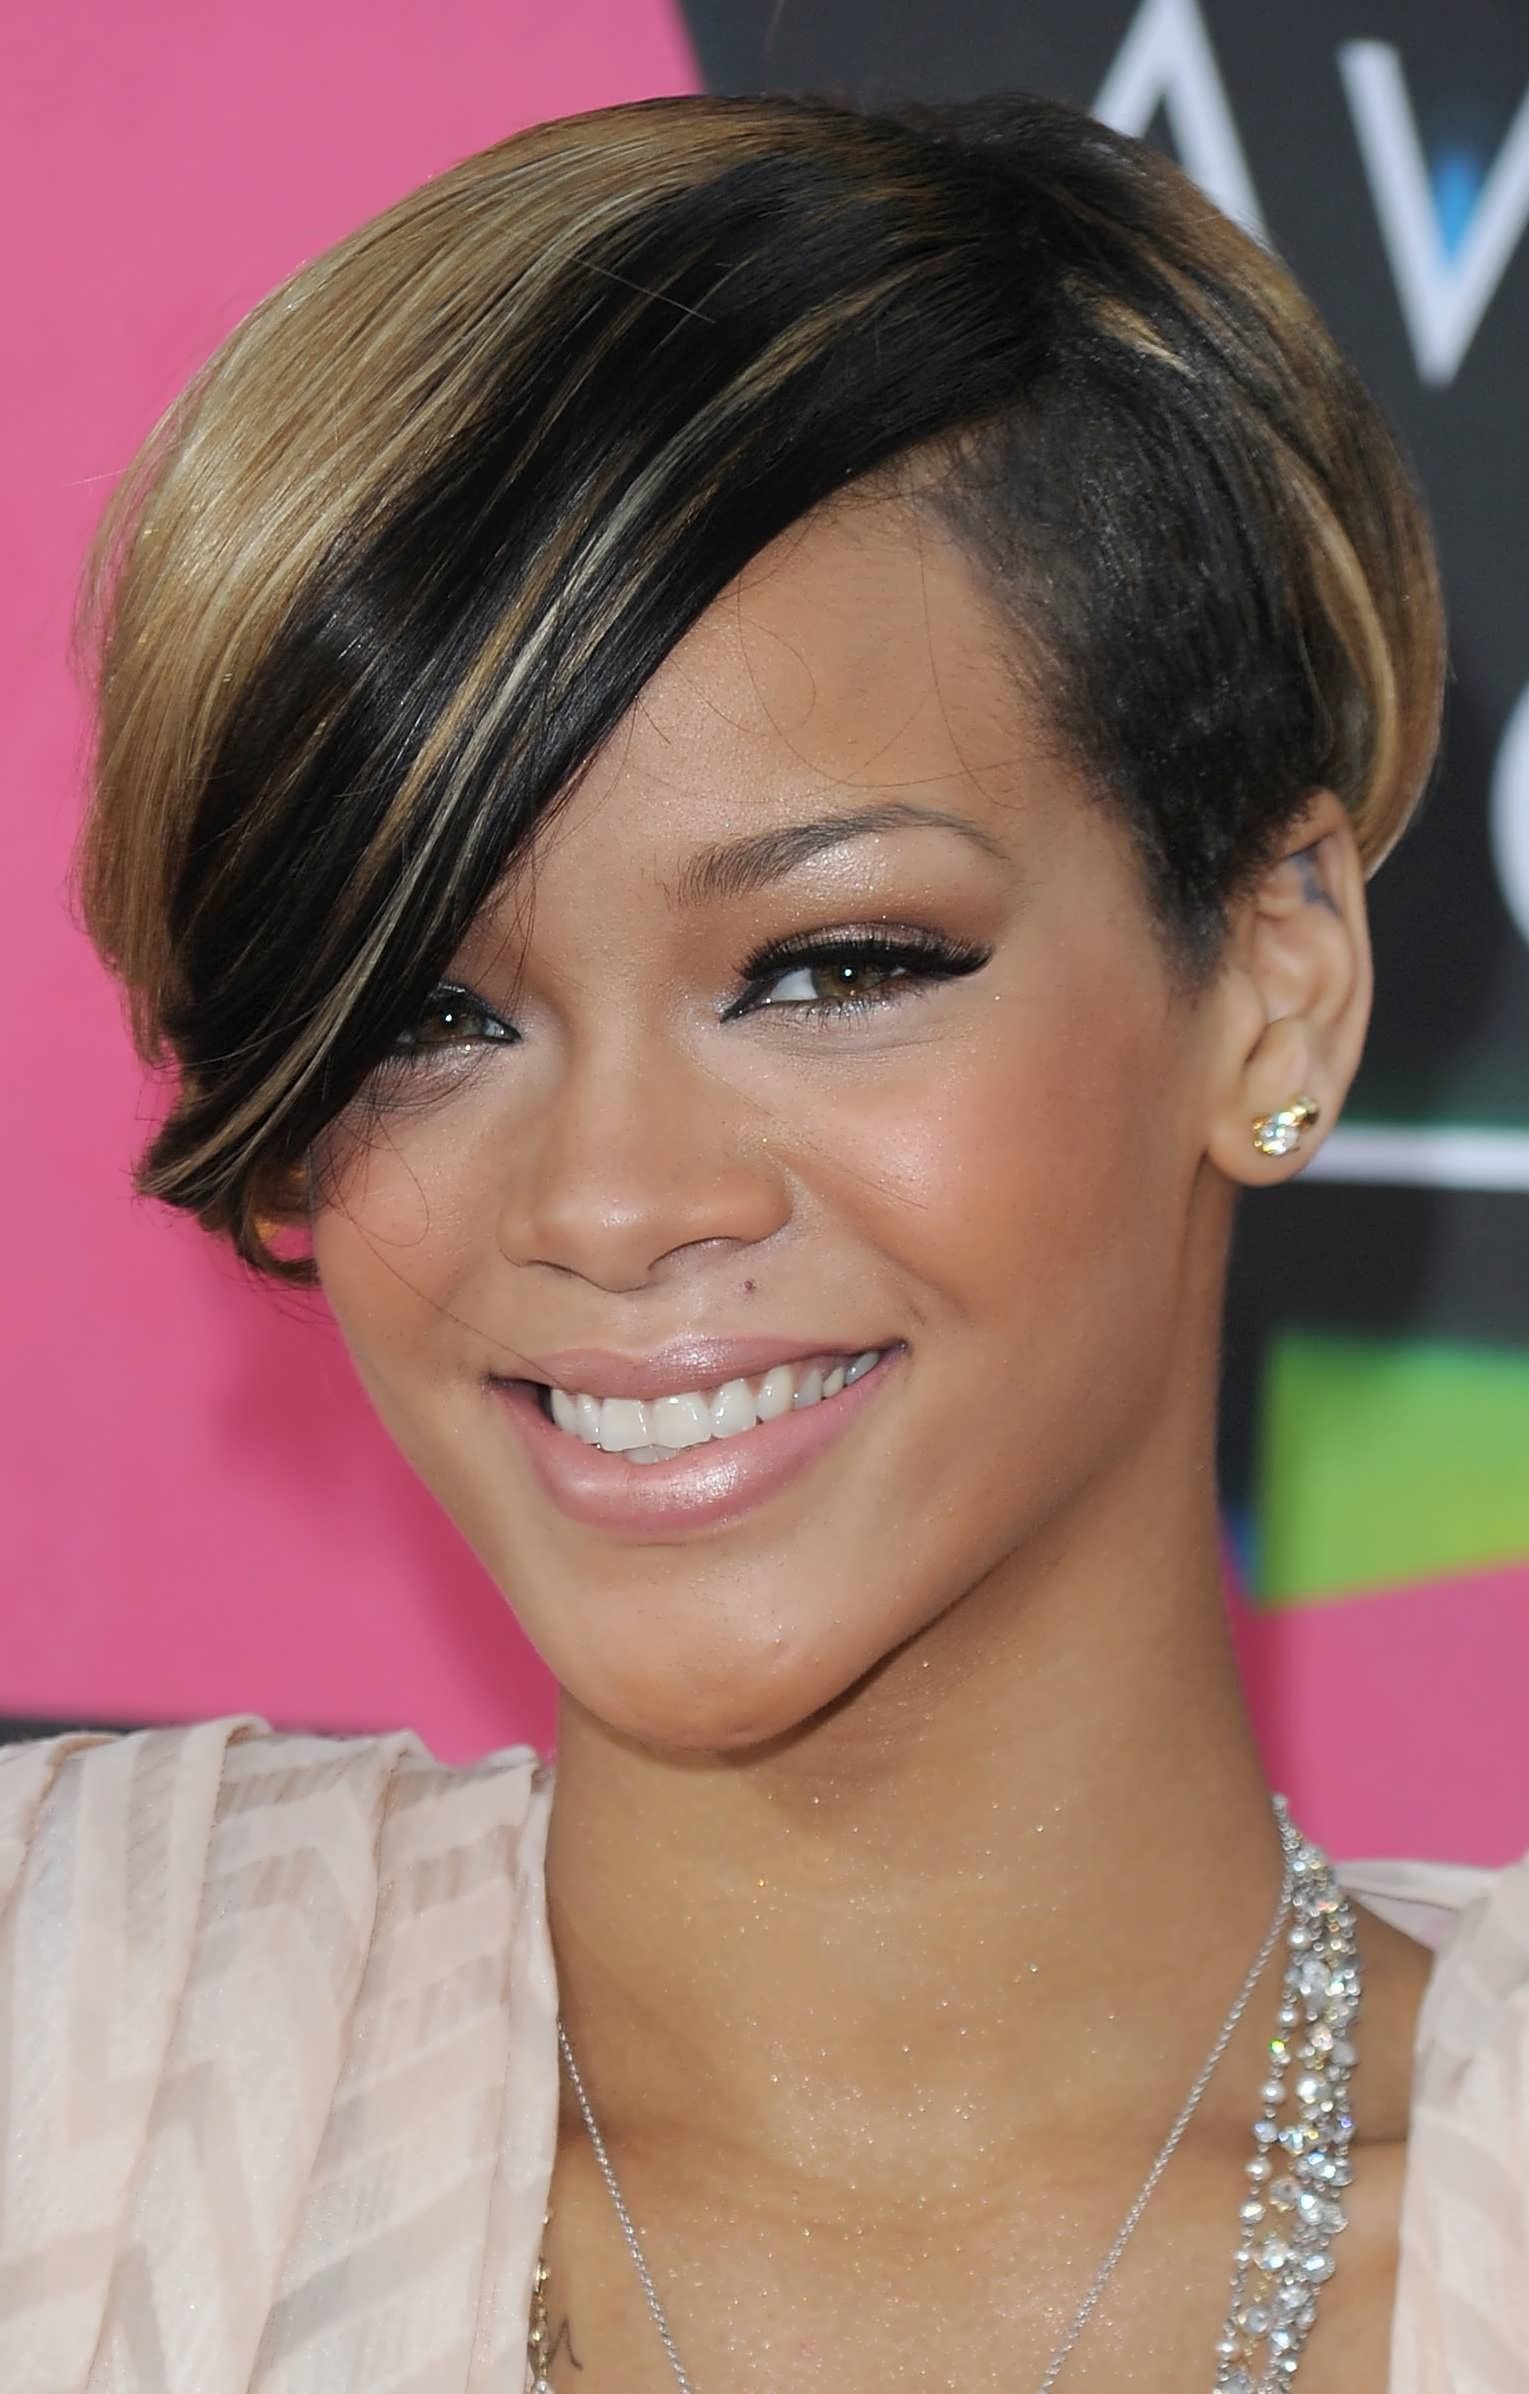 Astonishing 50 Best Short Haircuts For African American Women 2017 Cruckers Hairstyles For Men Maxibearus